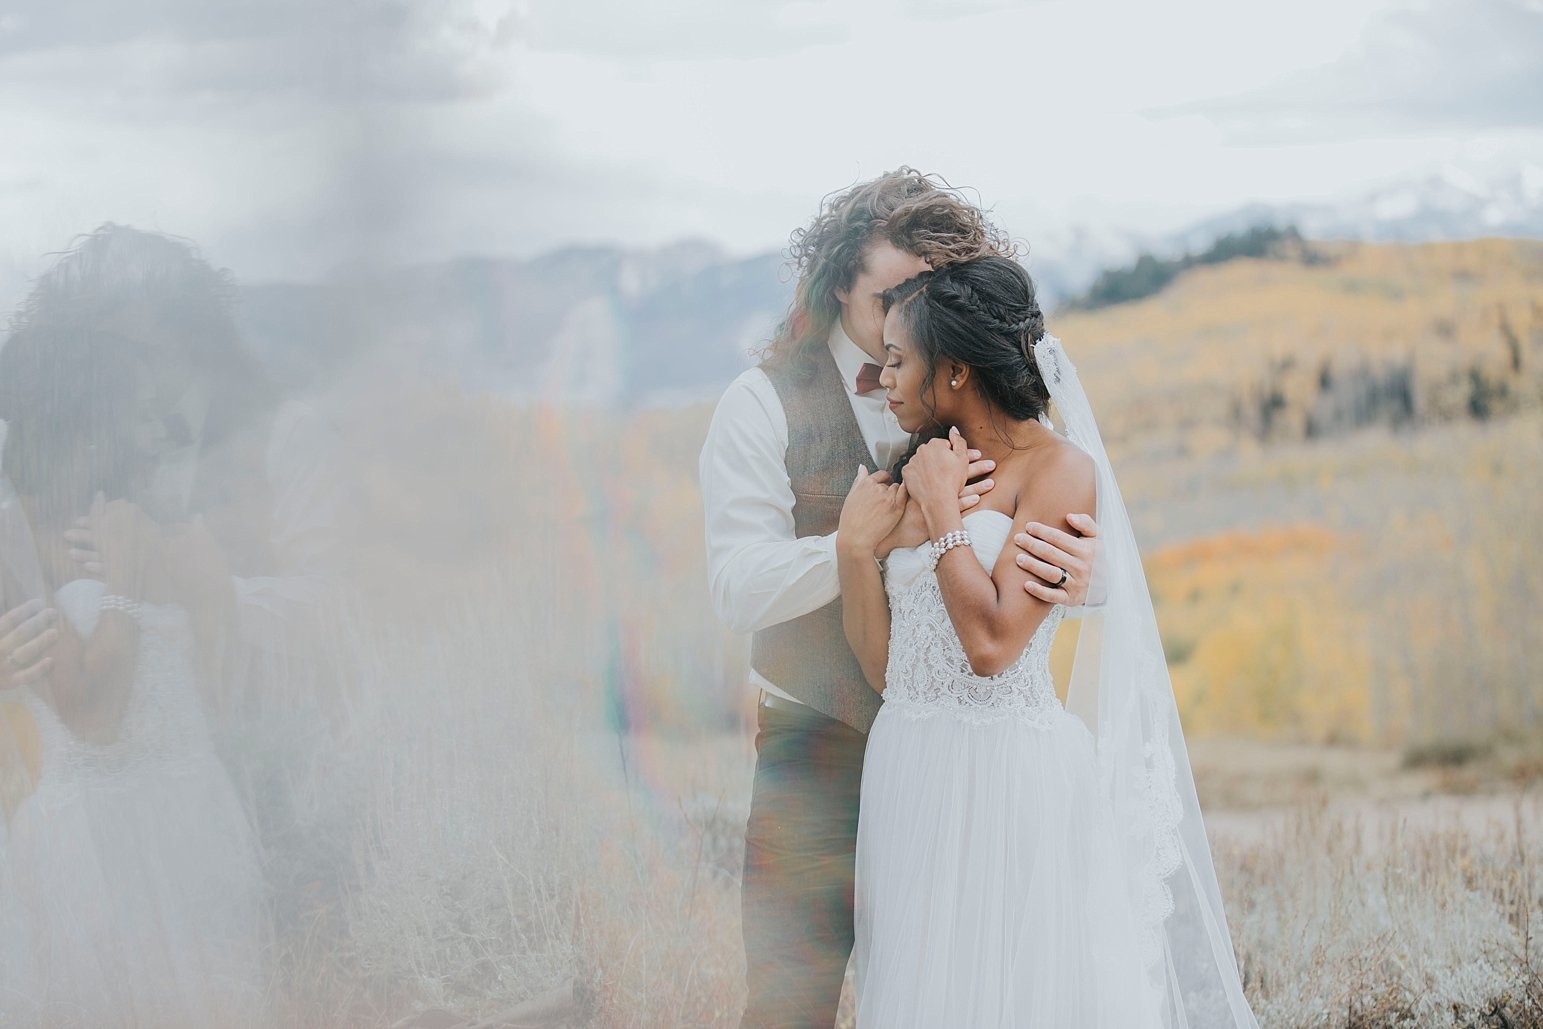 Salt Lake City Utah Wedding Portrait Photographer Wish Photography_0688